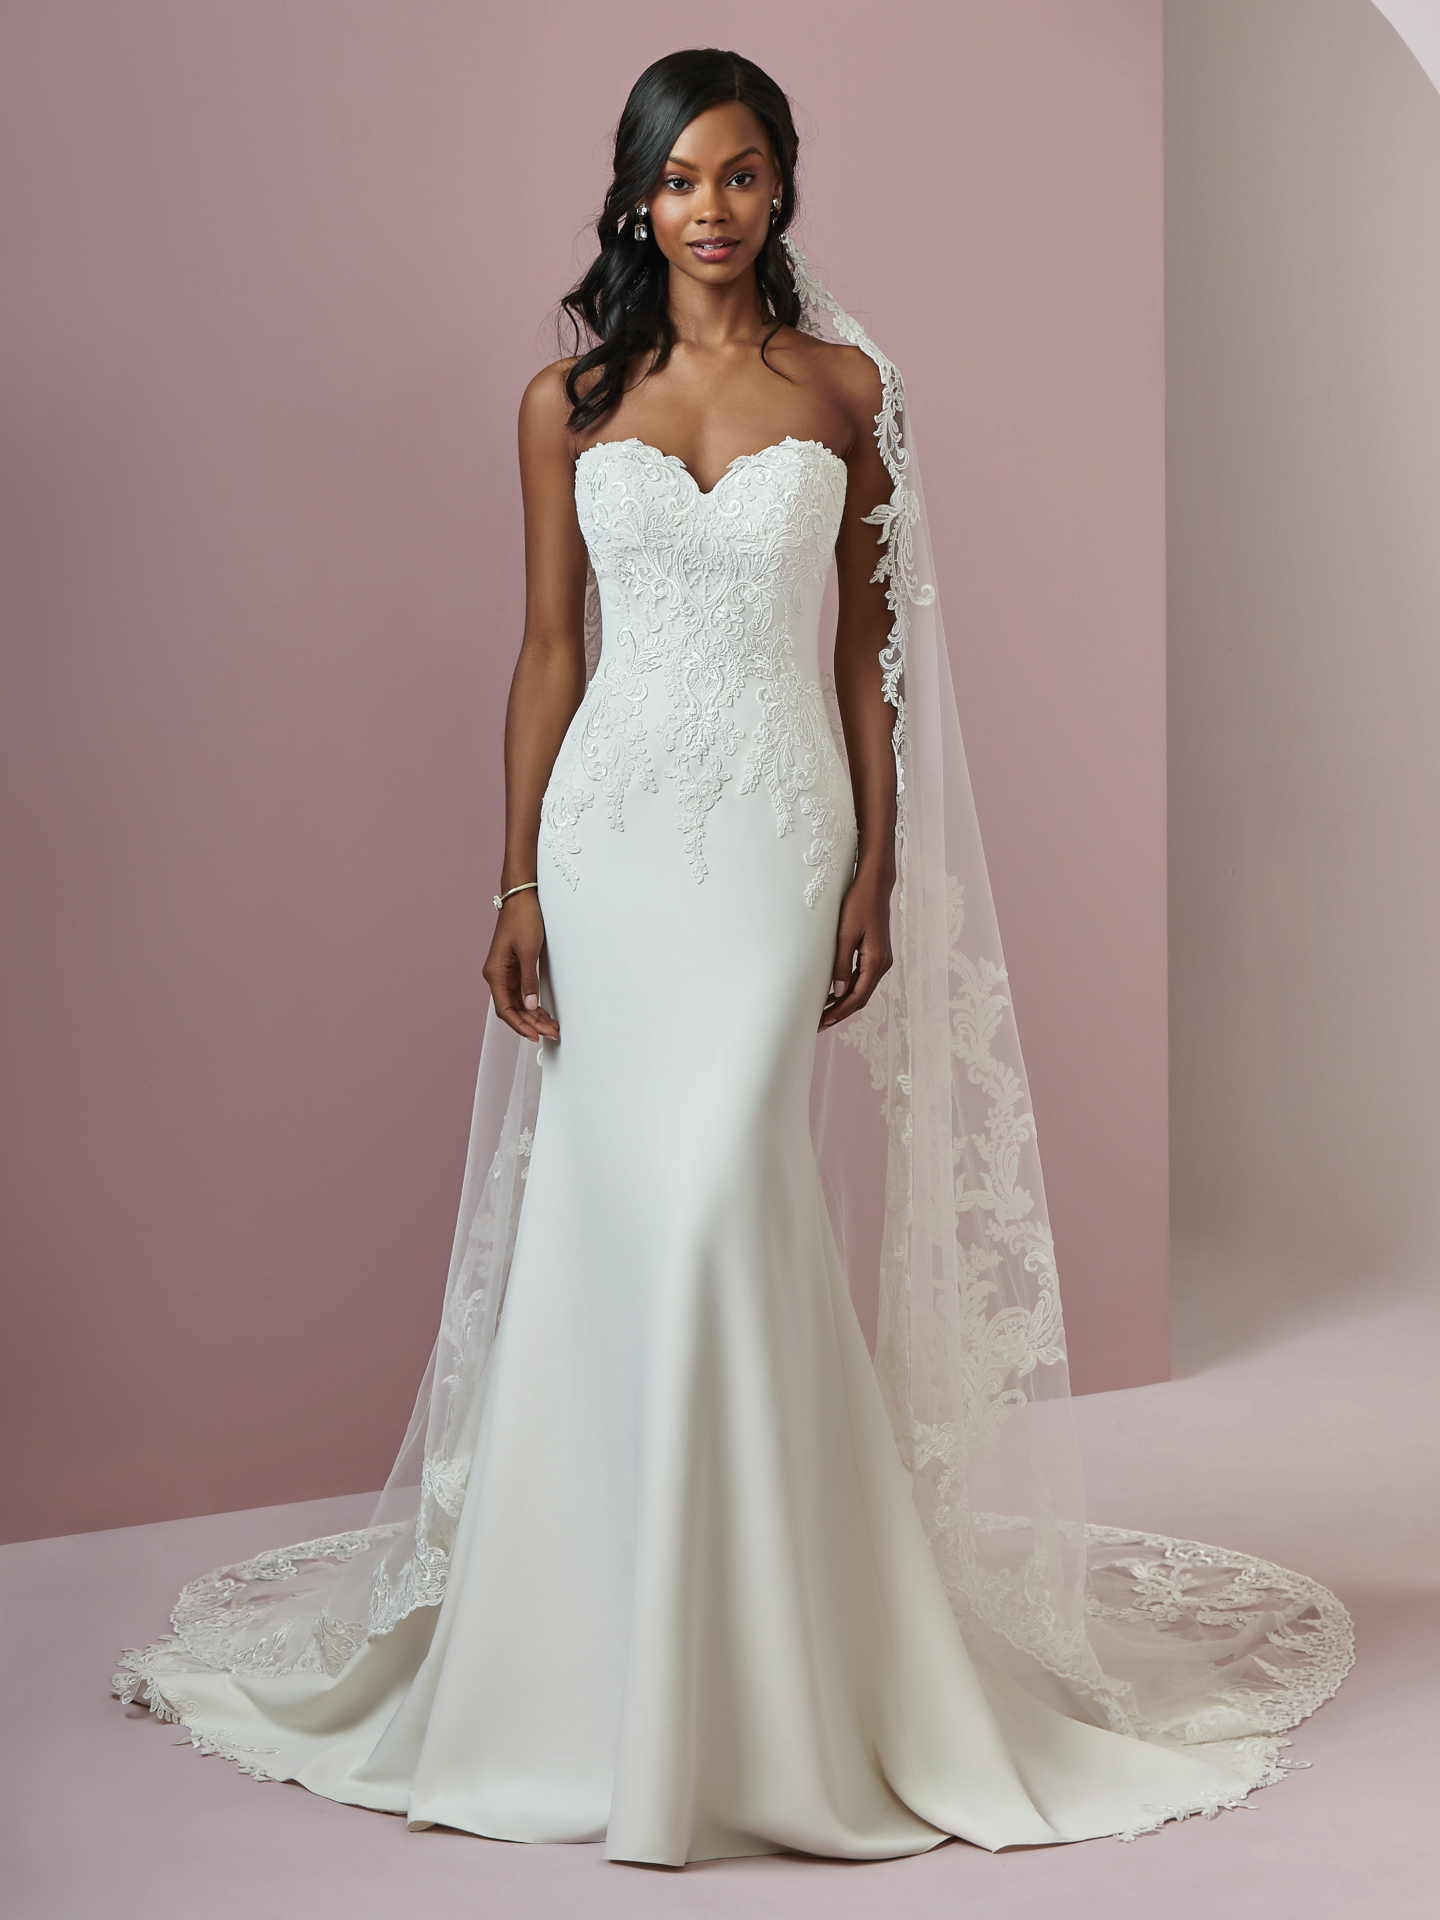 54ce569b46b5d Slip Style Wedding Dresses Chic and Relaxed Brides. Billie by Rebecca  Ingram.